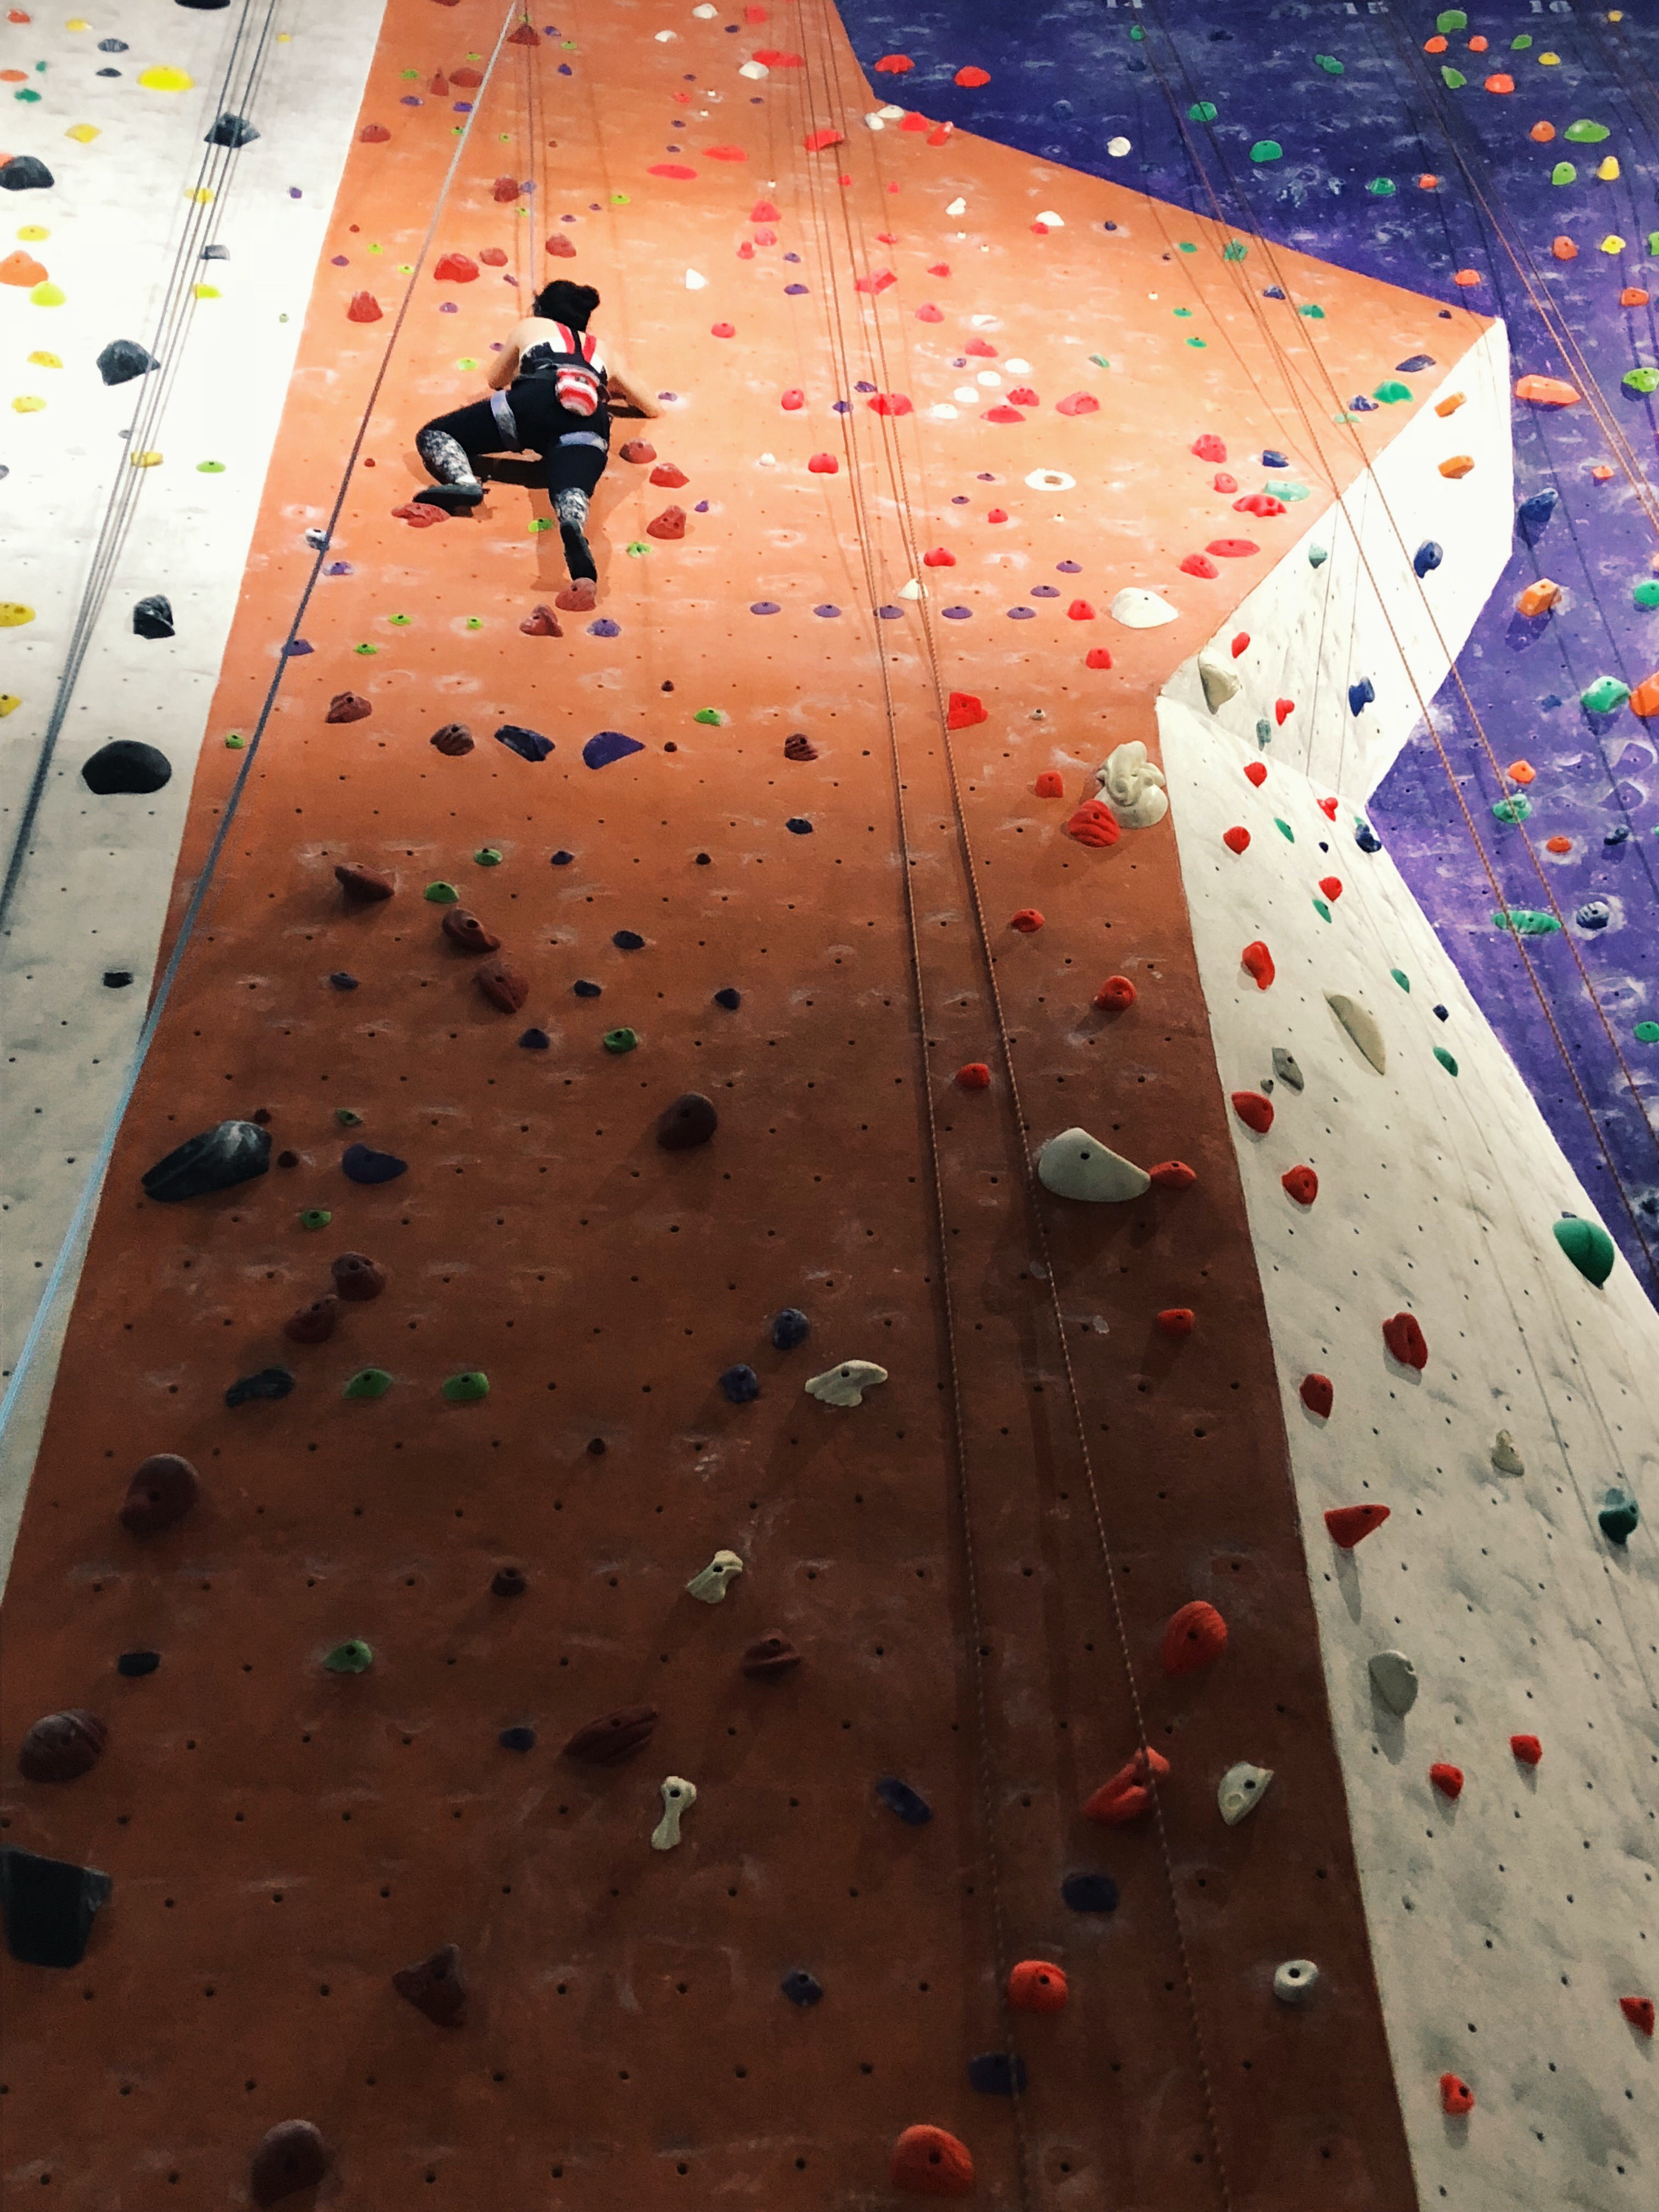 Climbing wall with woman near the top.